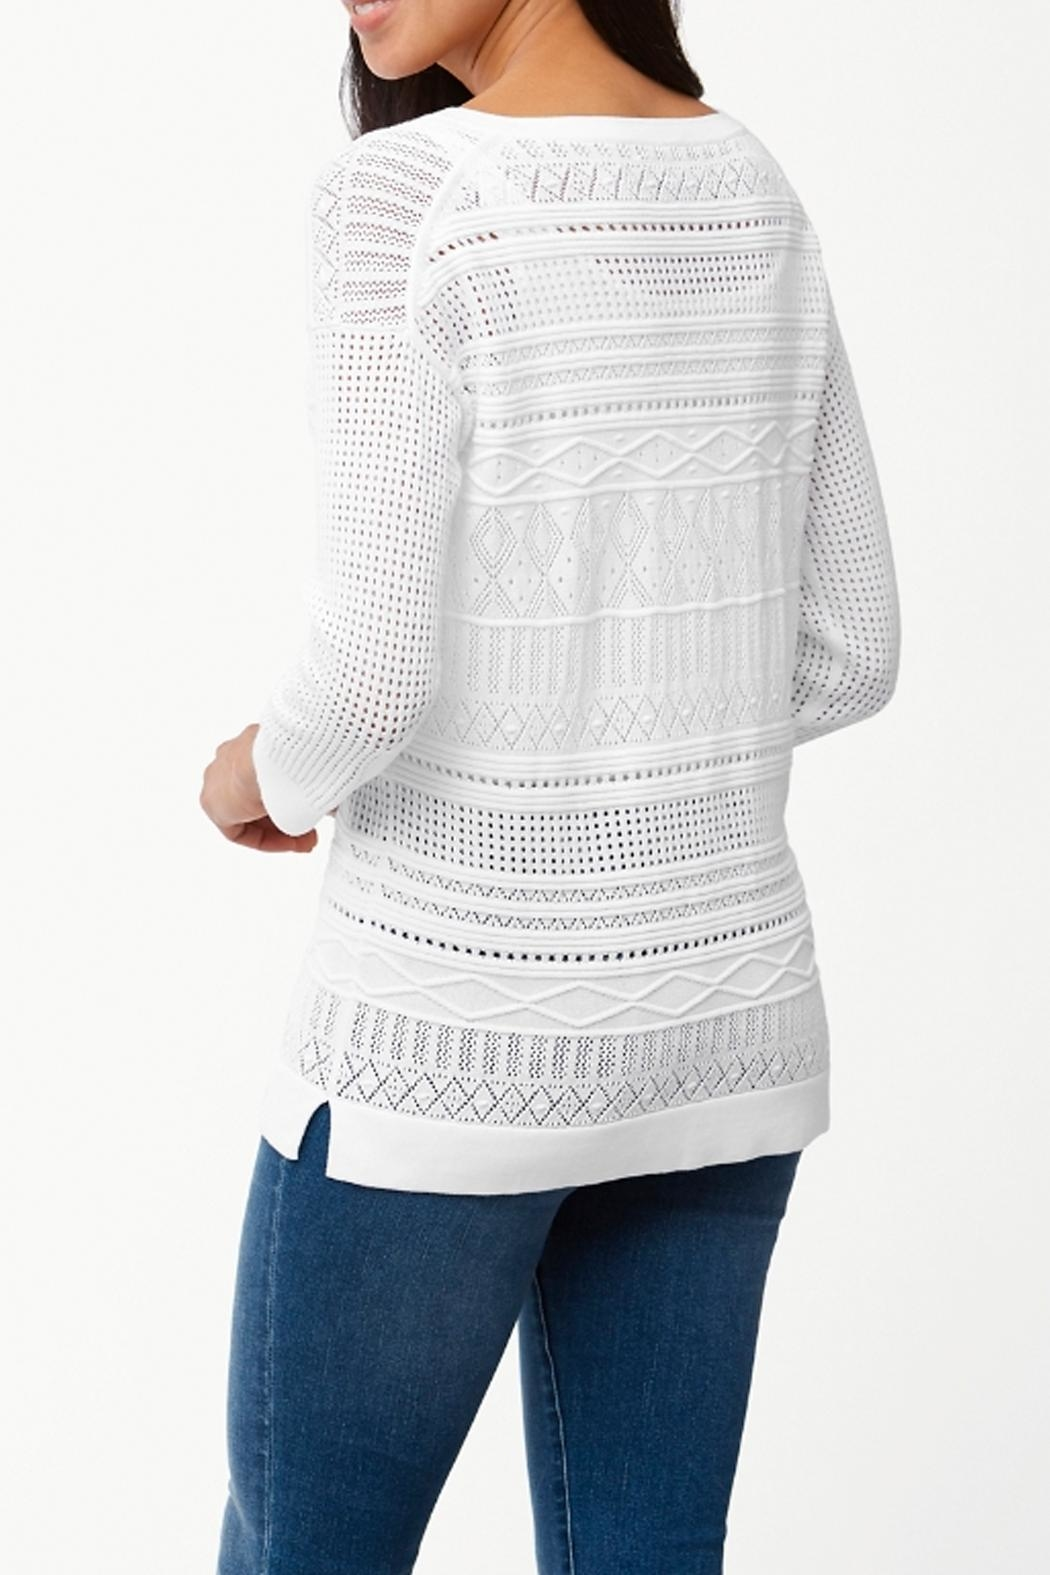 Tommy Bahama Pickford Pointelle Sweater - Front Full Image